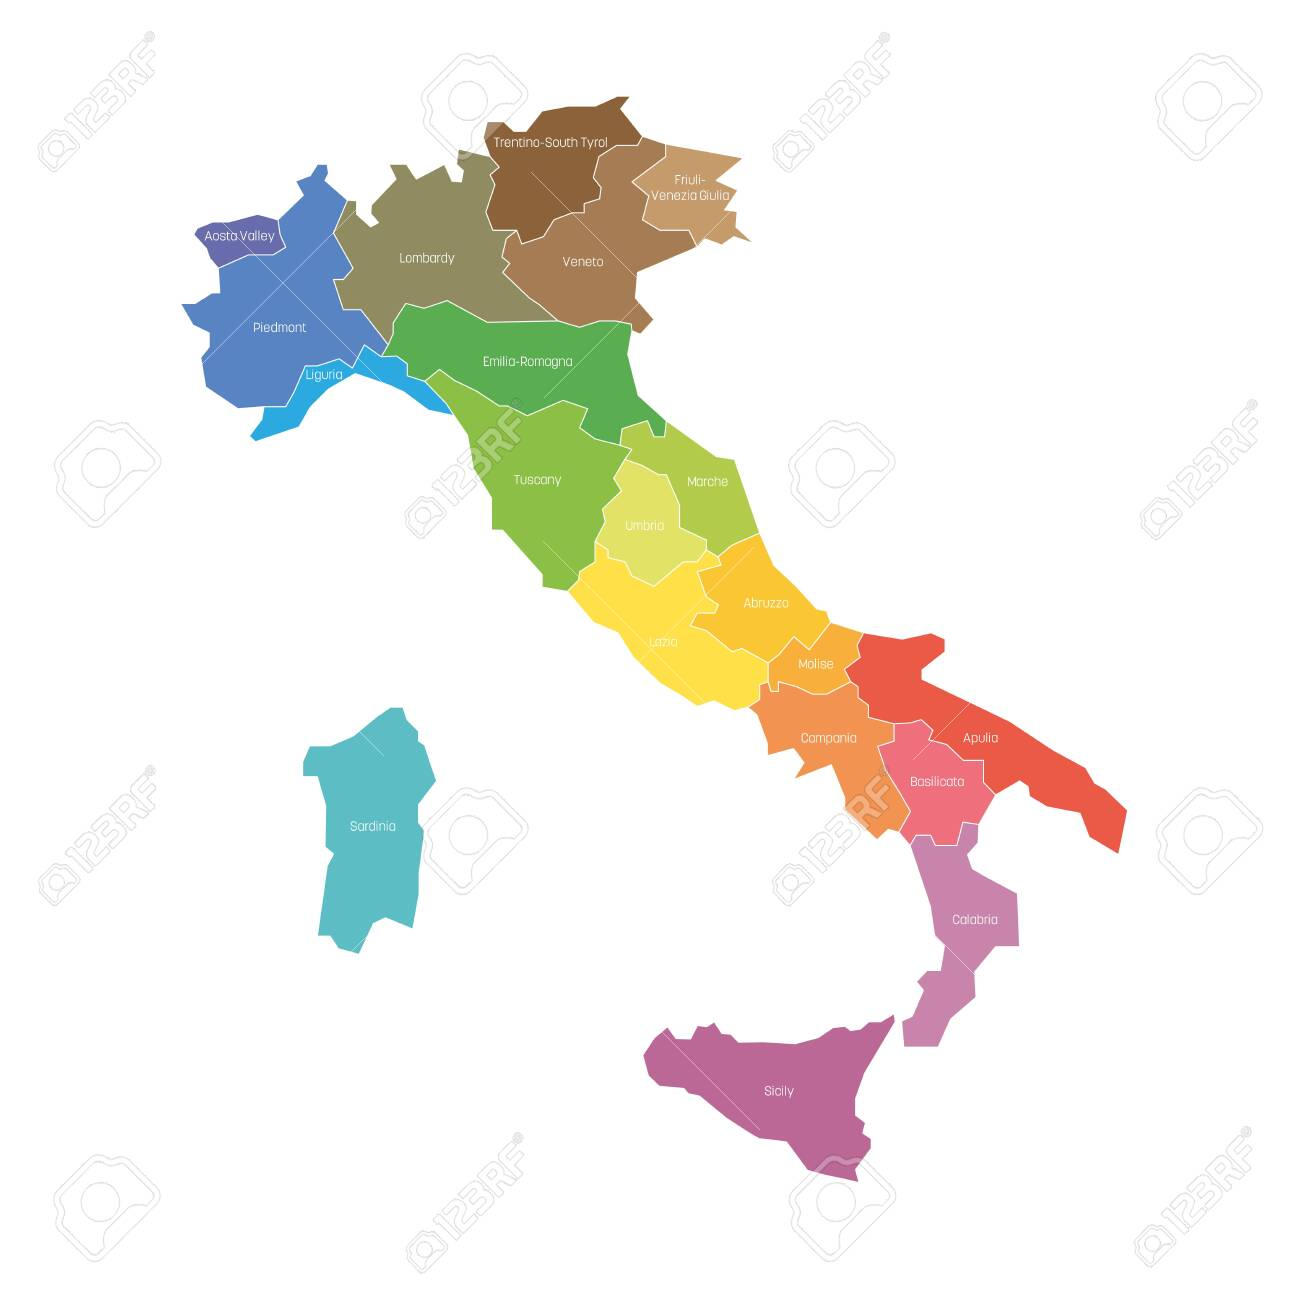 Italy Map Of Regions.Regions Of Italy Map Of Regional Country Administrative Divisions